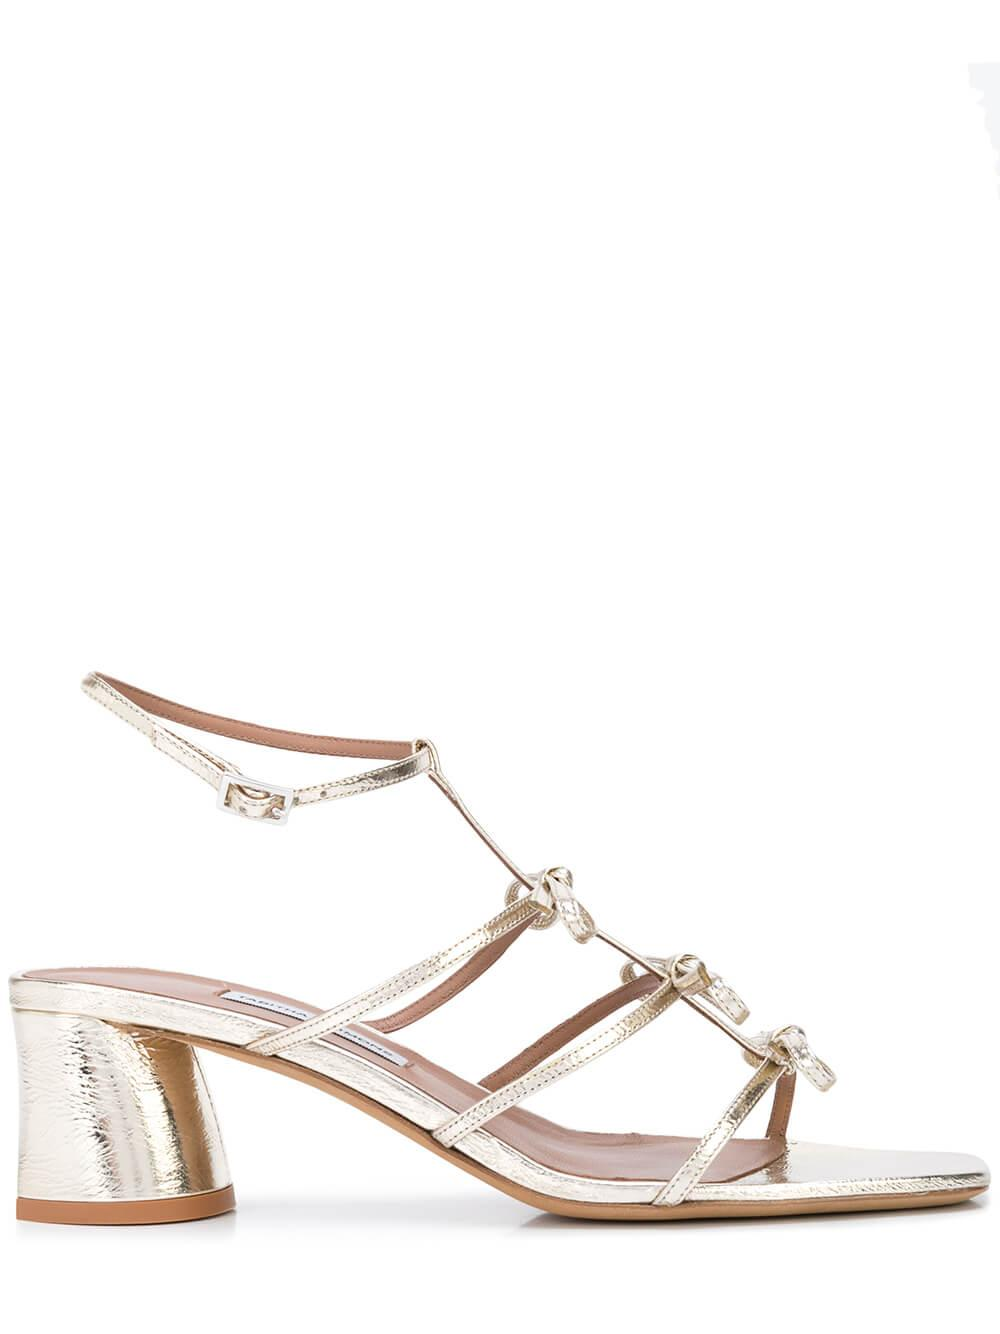 Covie Strappy Block Heel Sandal